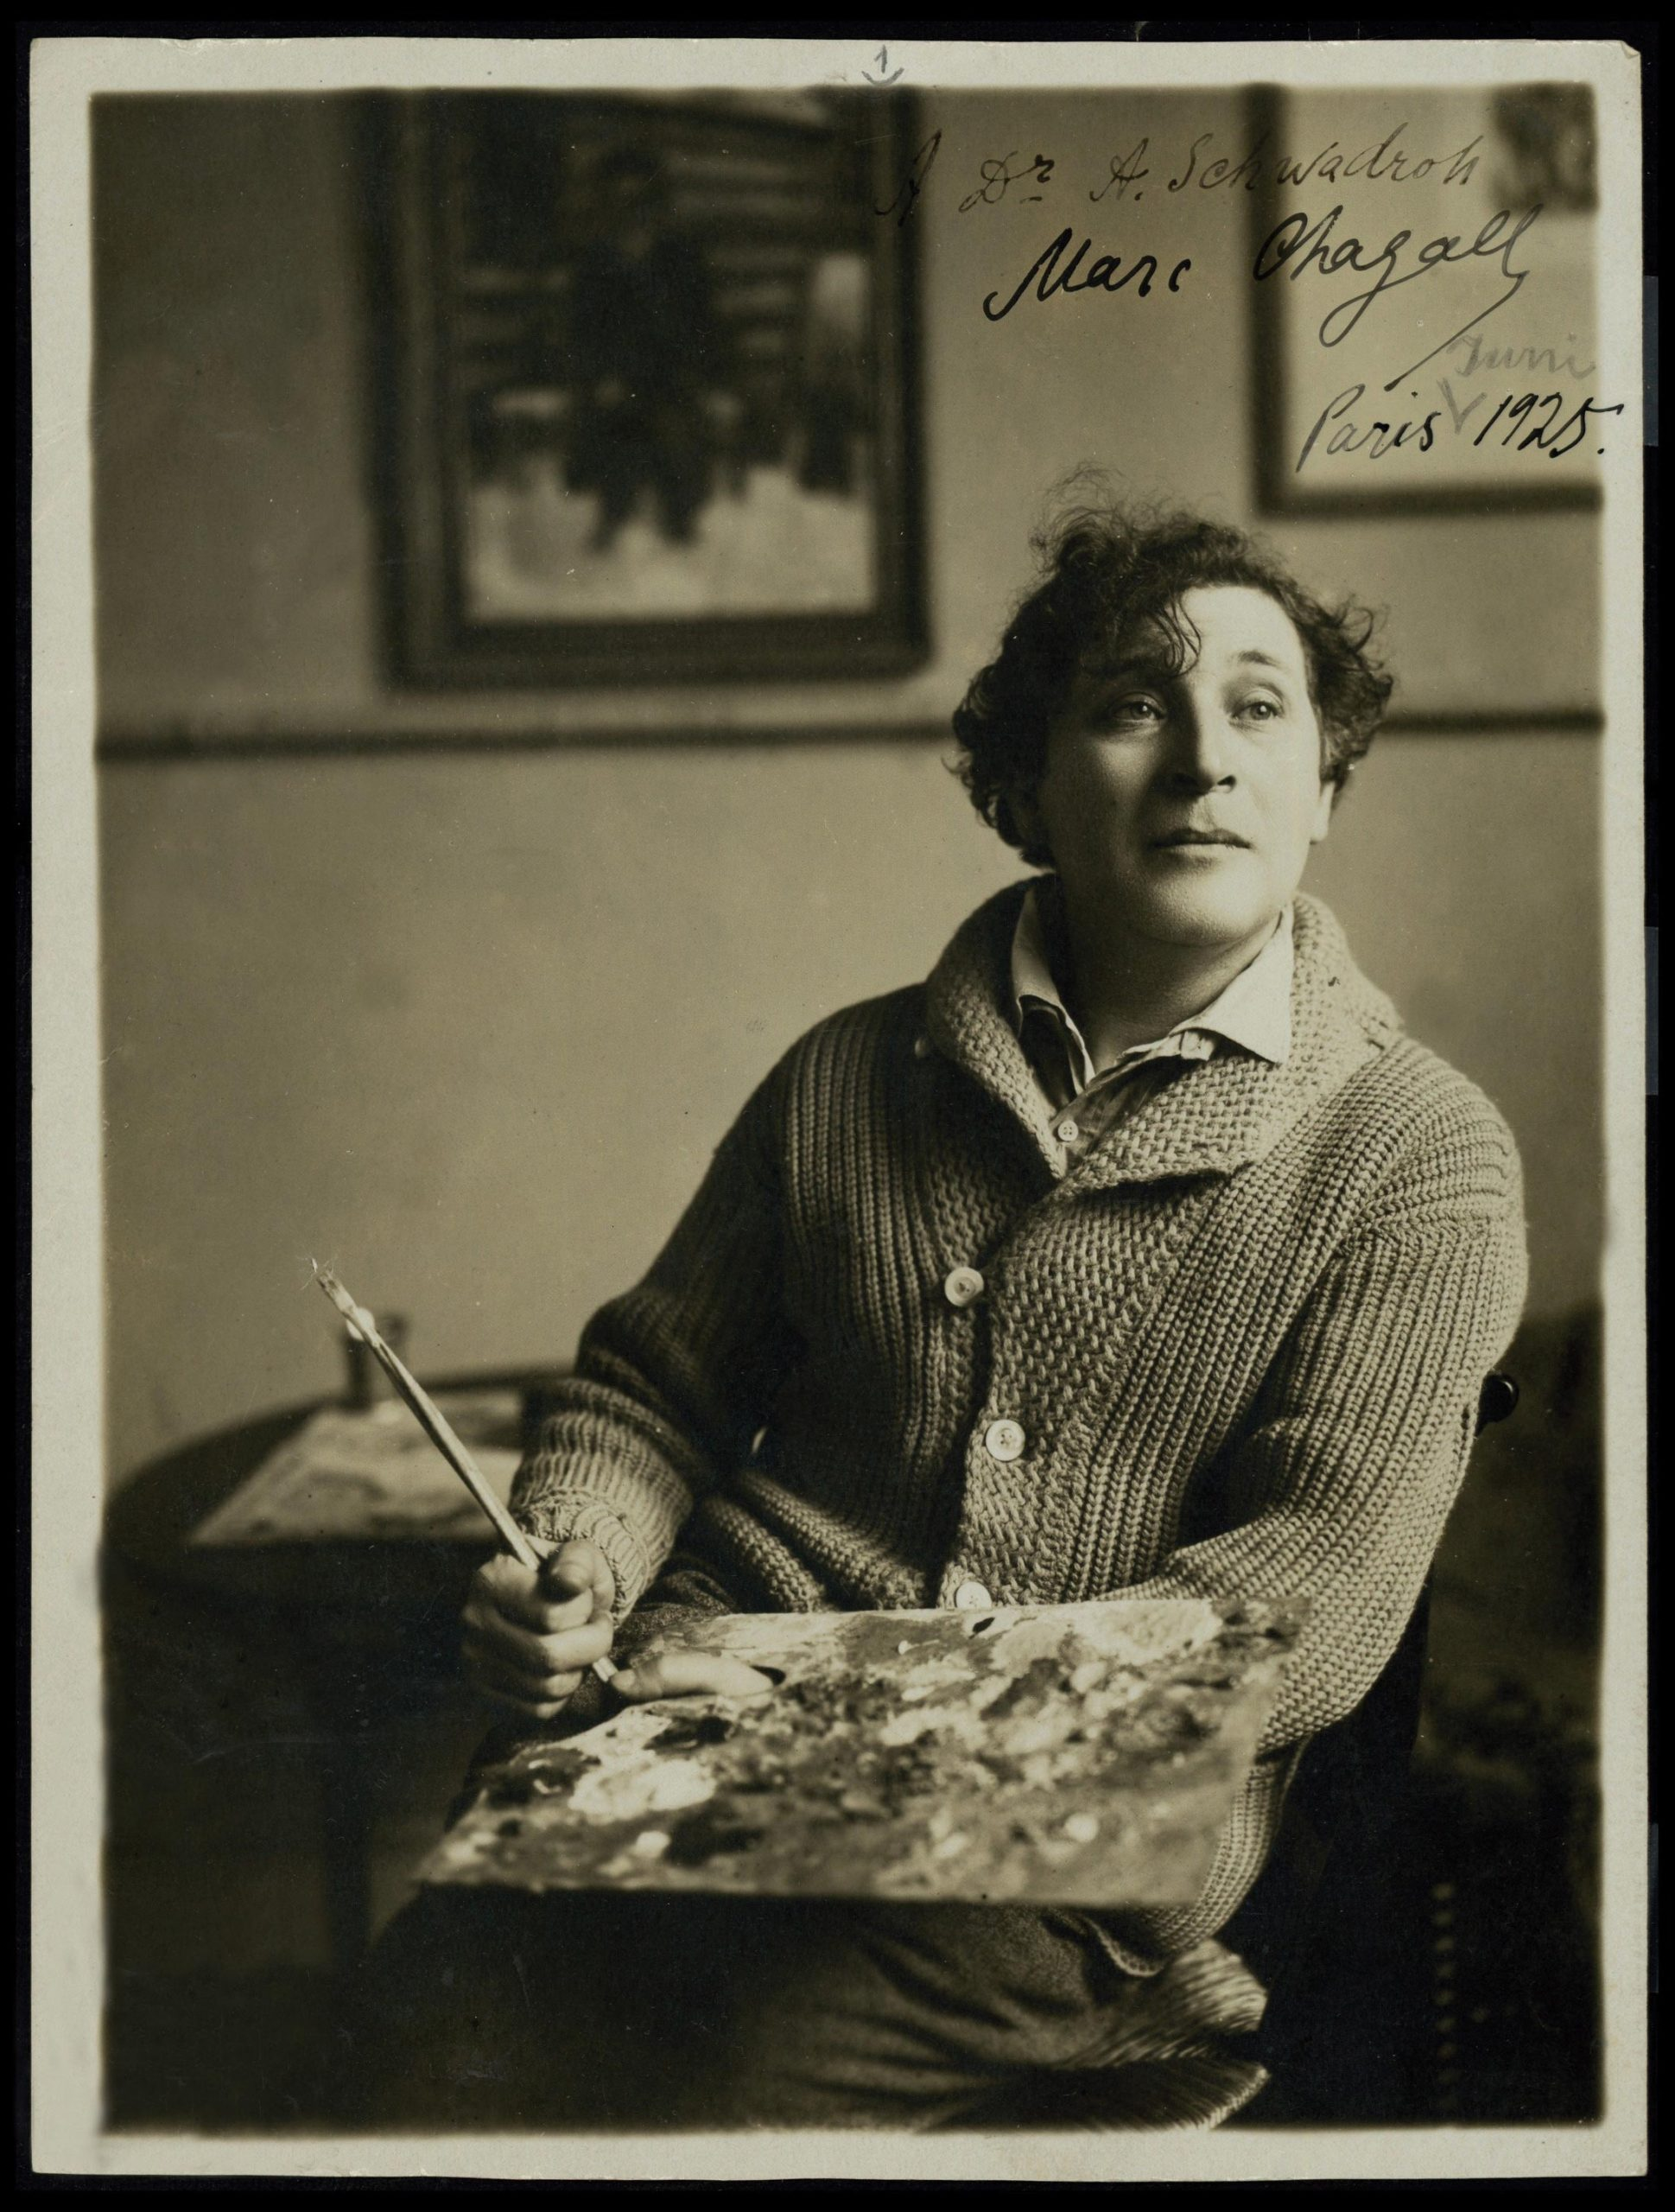 Drawn by the Surrealistic school of art developing in Paris as much as by the city's bright lights and culture. Marc Chagall in the 1920s, at work in Paris